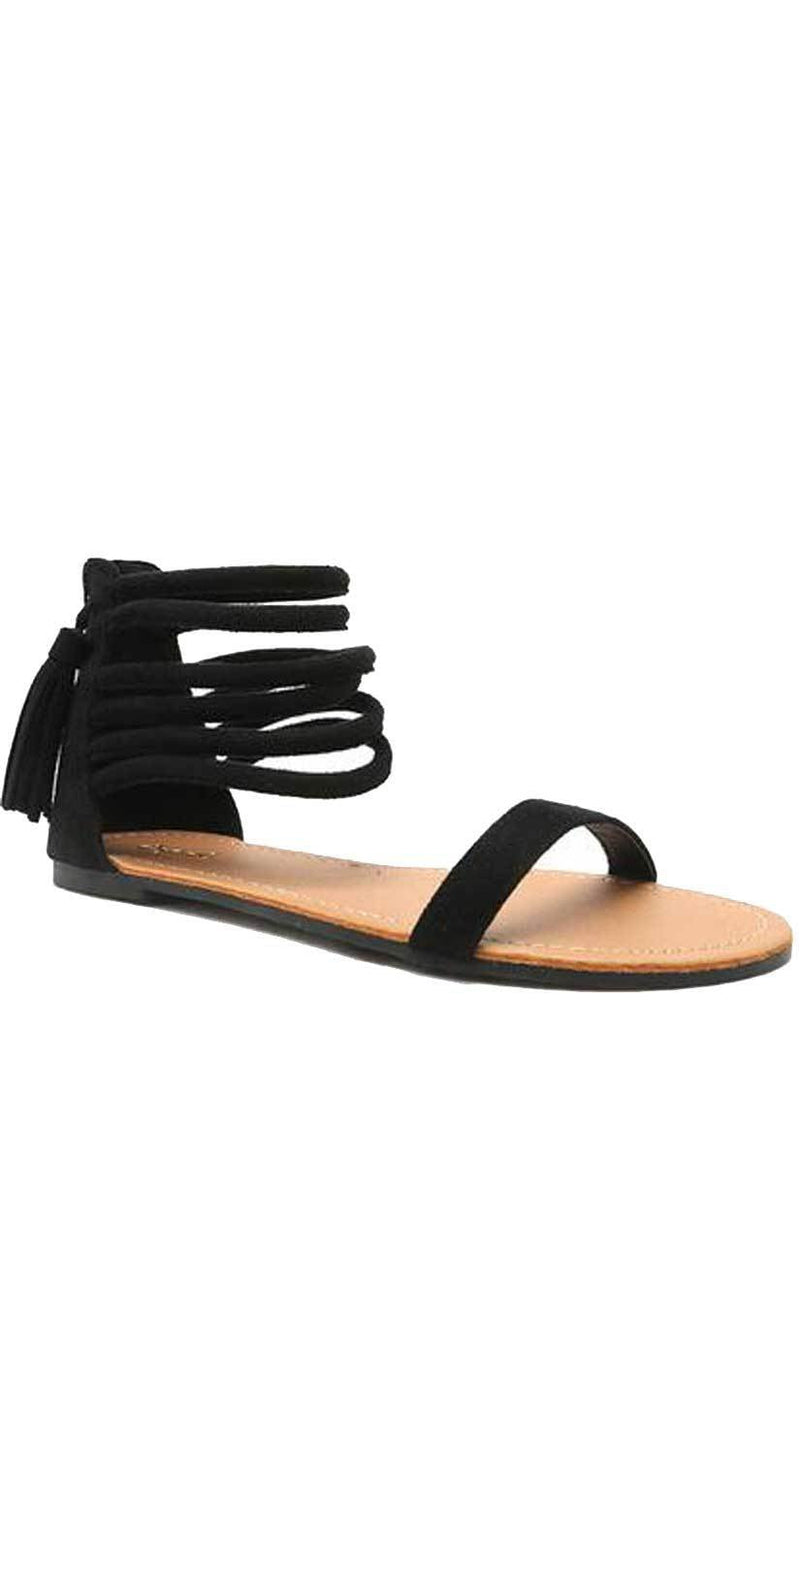 Qupid Shoes Archer Sandal In Black ARCHER-166 Black: